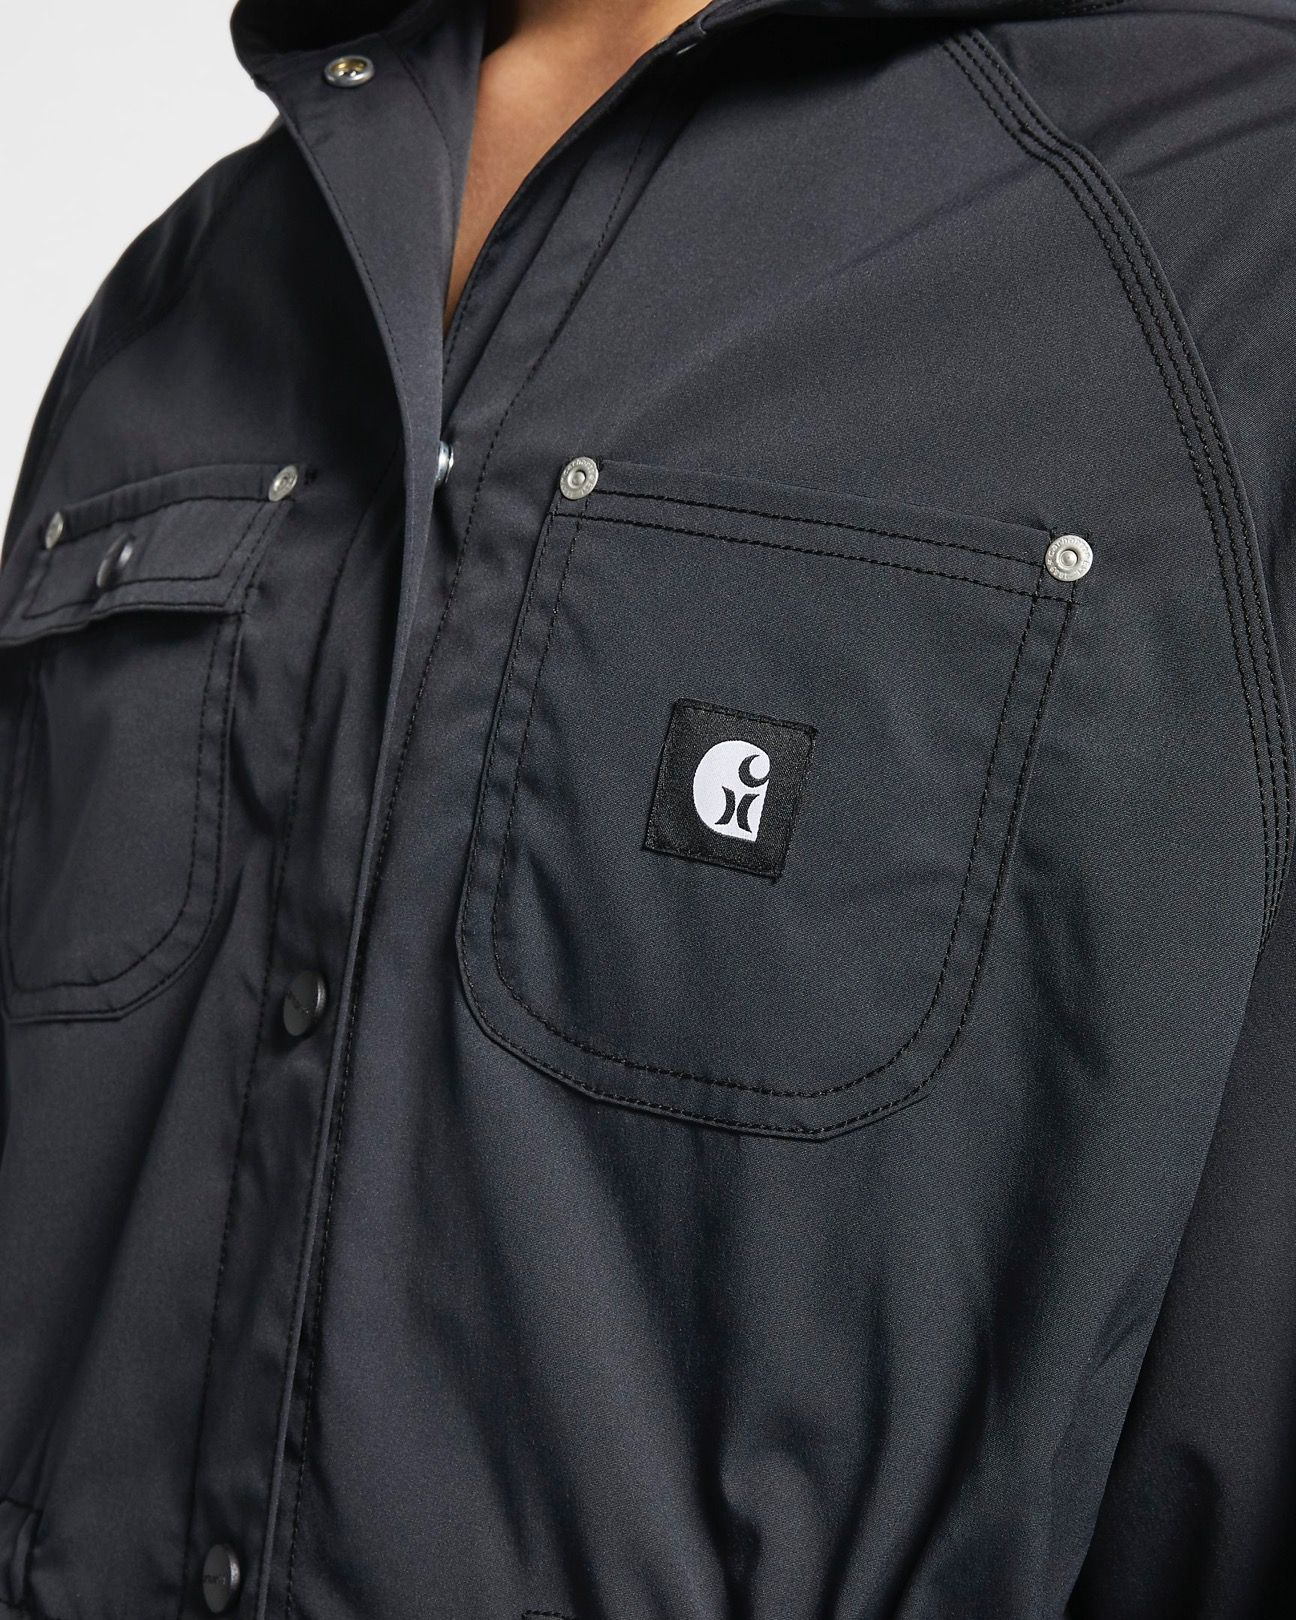 e5547fbbcd Hurley and Carhartt Created Stylish Workwear We Didn't Know We Wanted